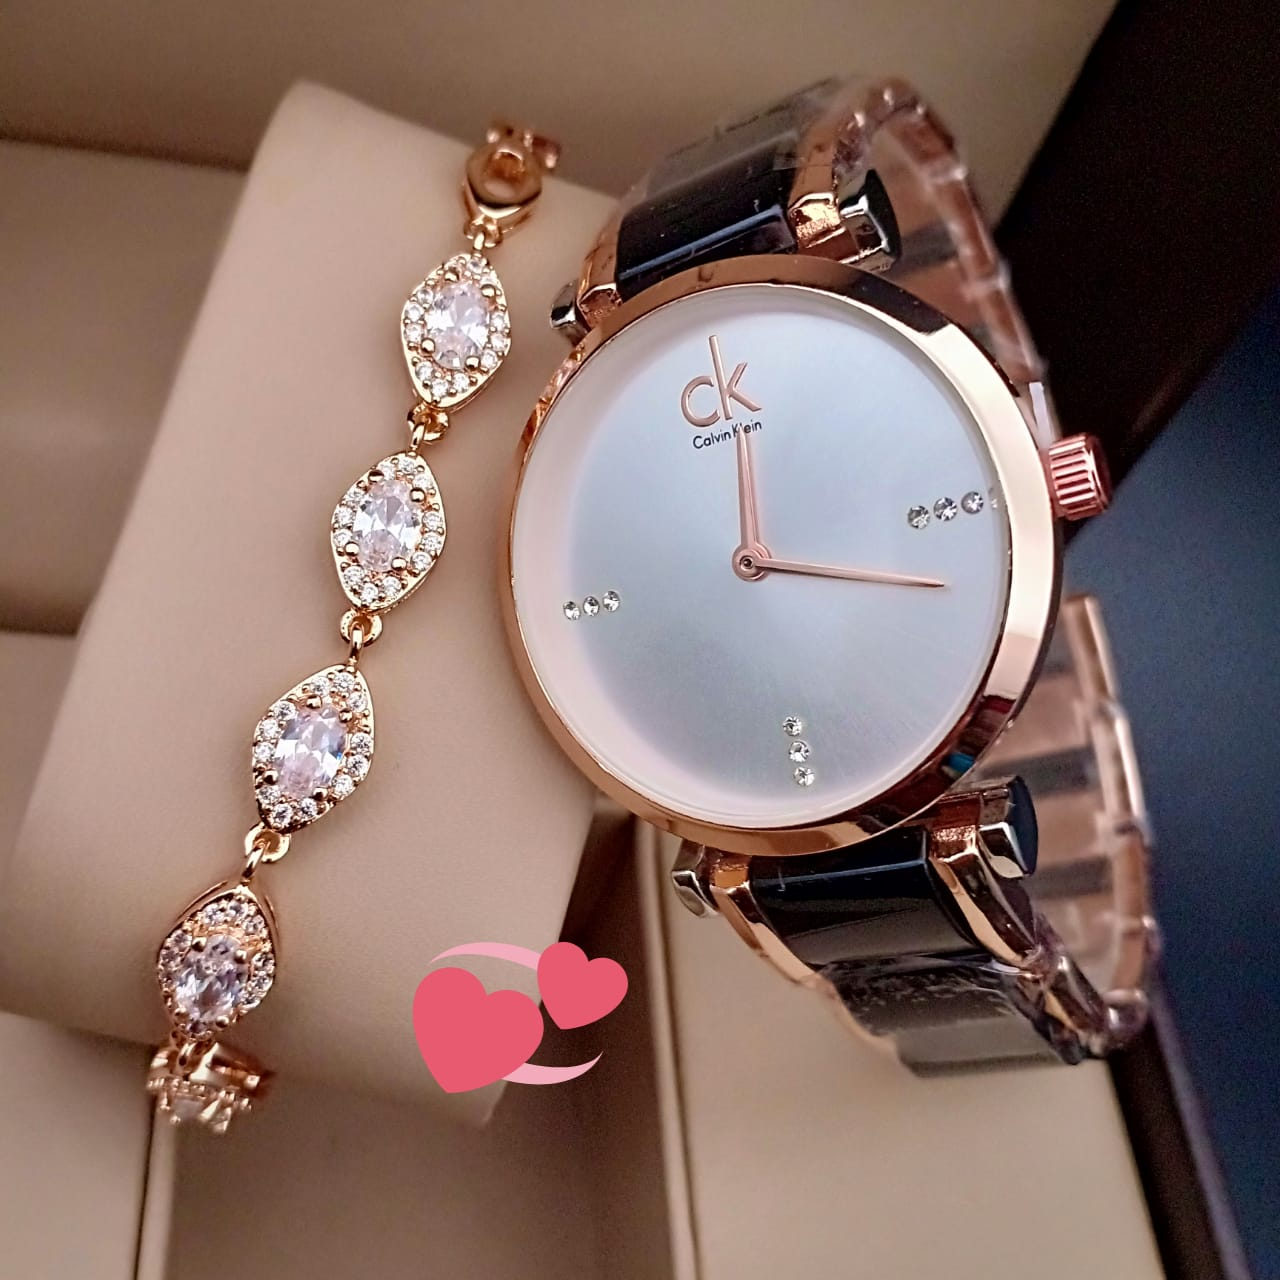 CK Ladies Round Dial Watch With Leaf Shapes Bracelet